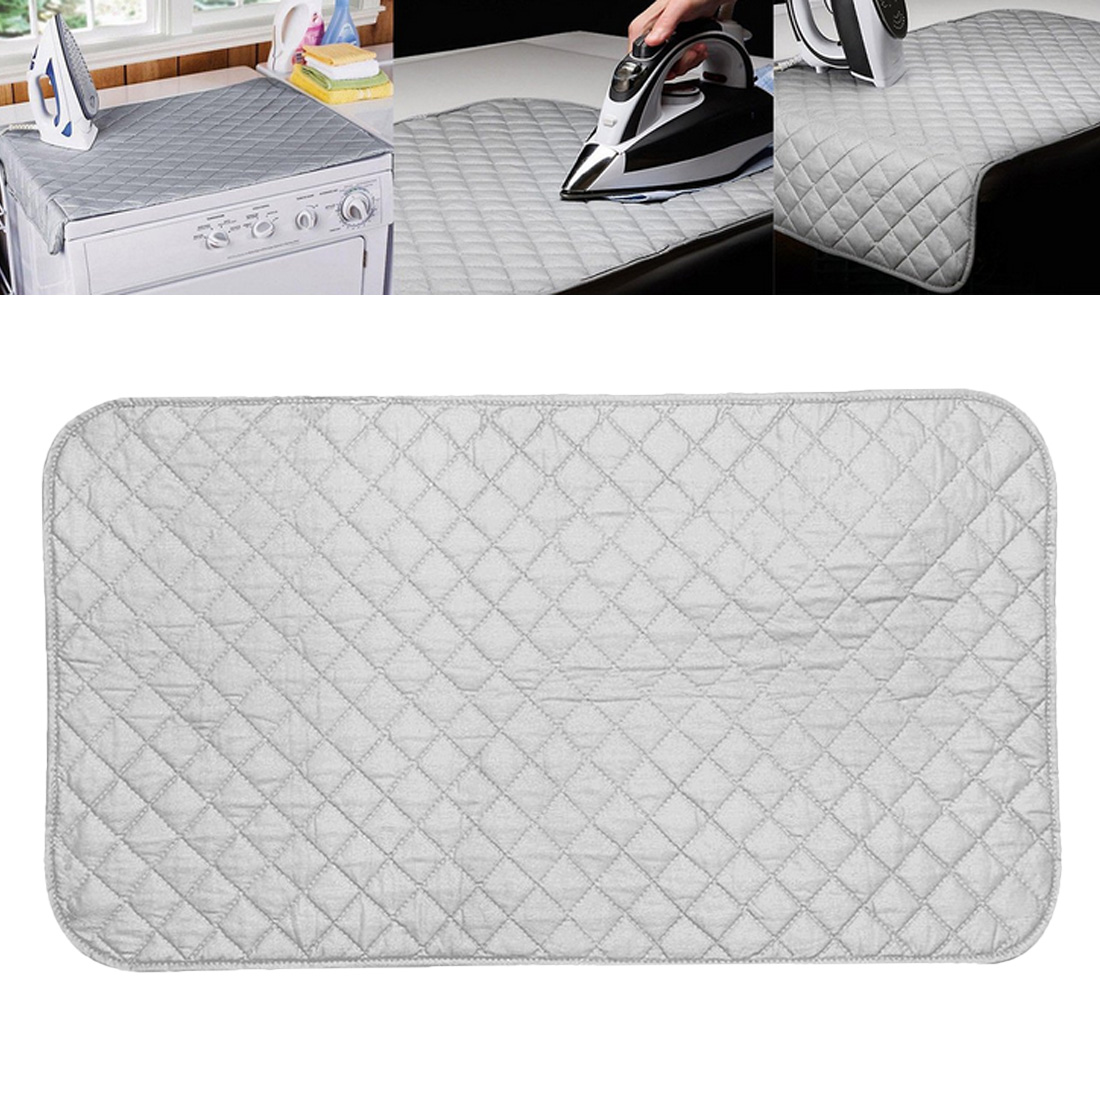 Magnetic Ironing Mat Laundry Pad Washer Dryer Cover Board Heat Resistant Blanket Mesh Press Clothes Protect Protector image